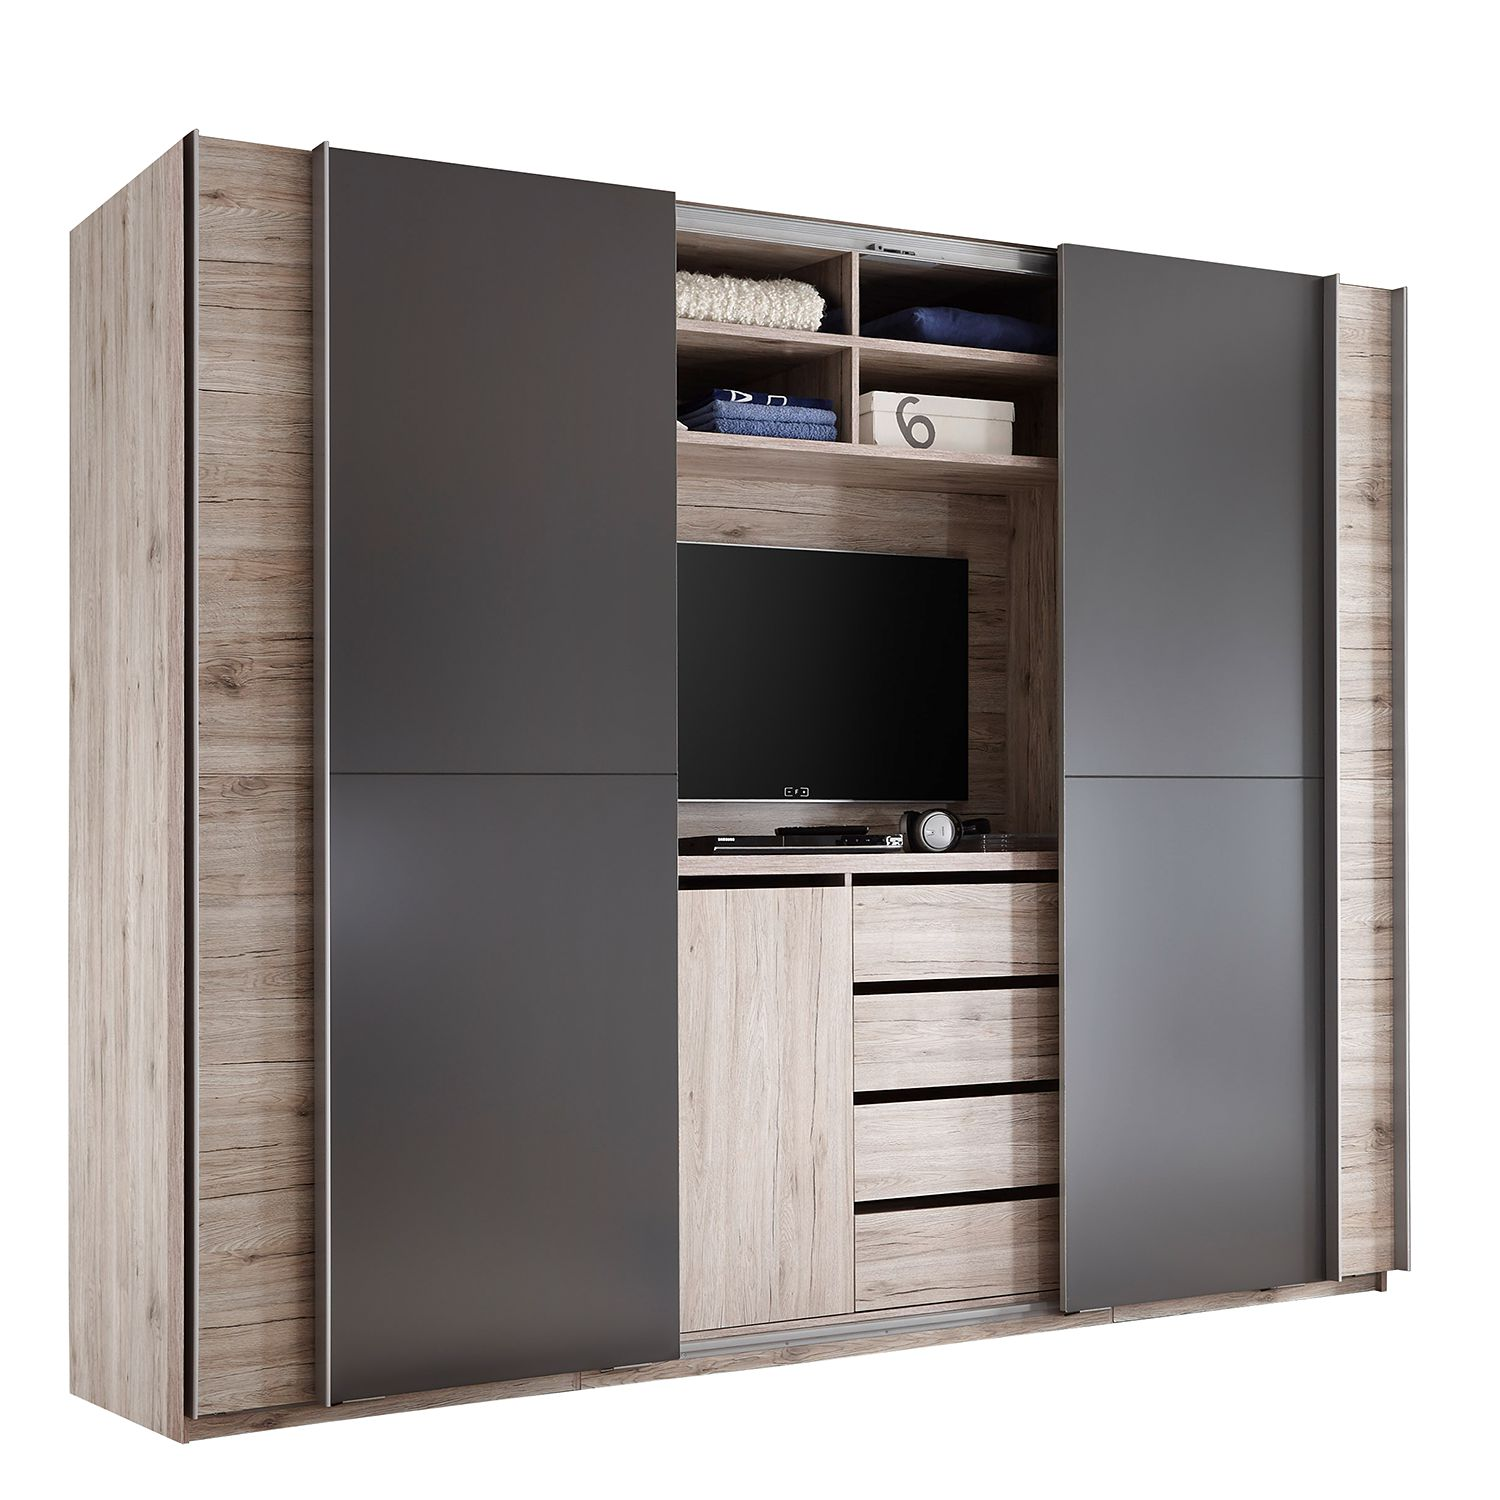 10 sparen schwebet renschrank tilsit nur 899 99. Black Bedroom Furniture Sets. Home Design Ideas